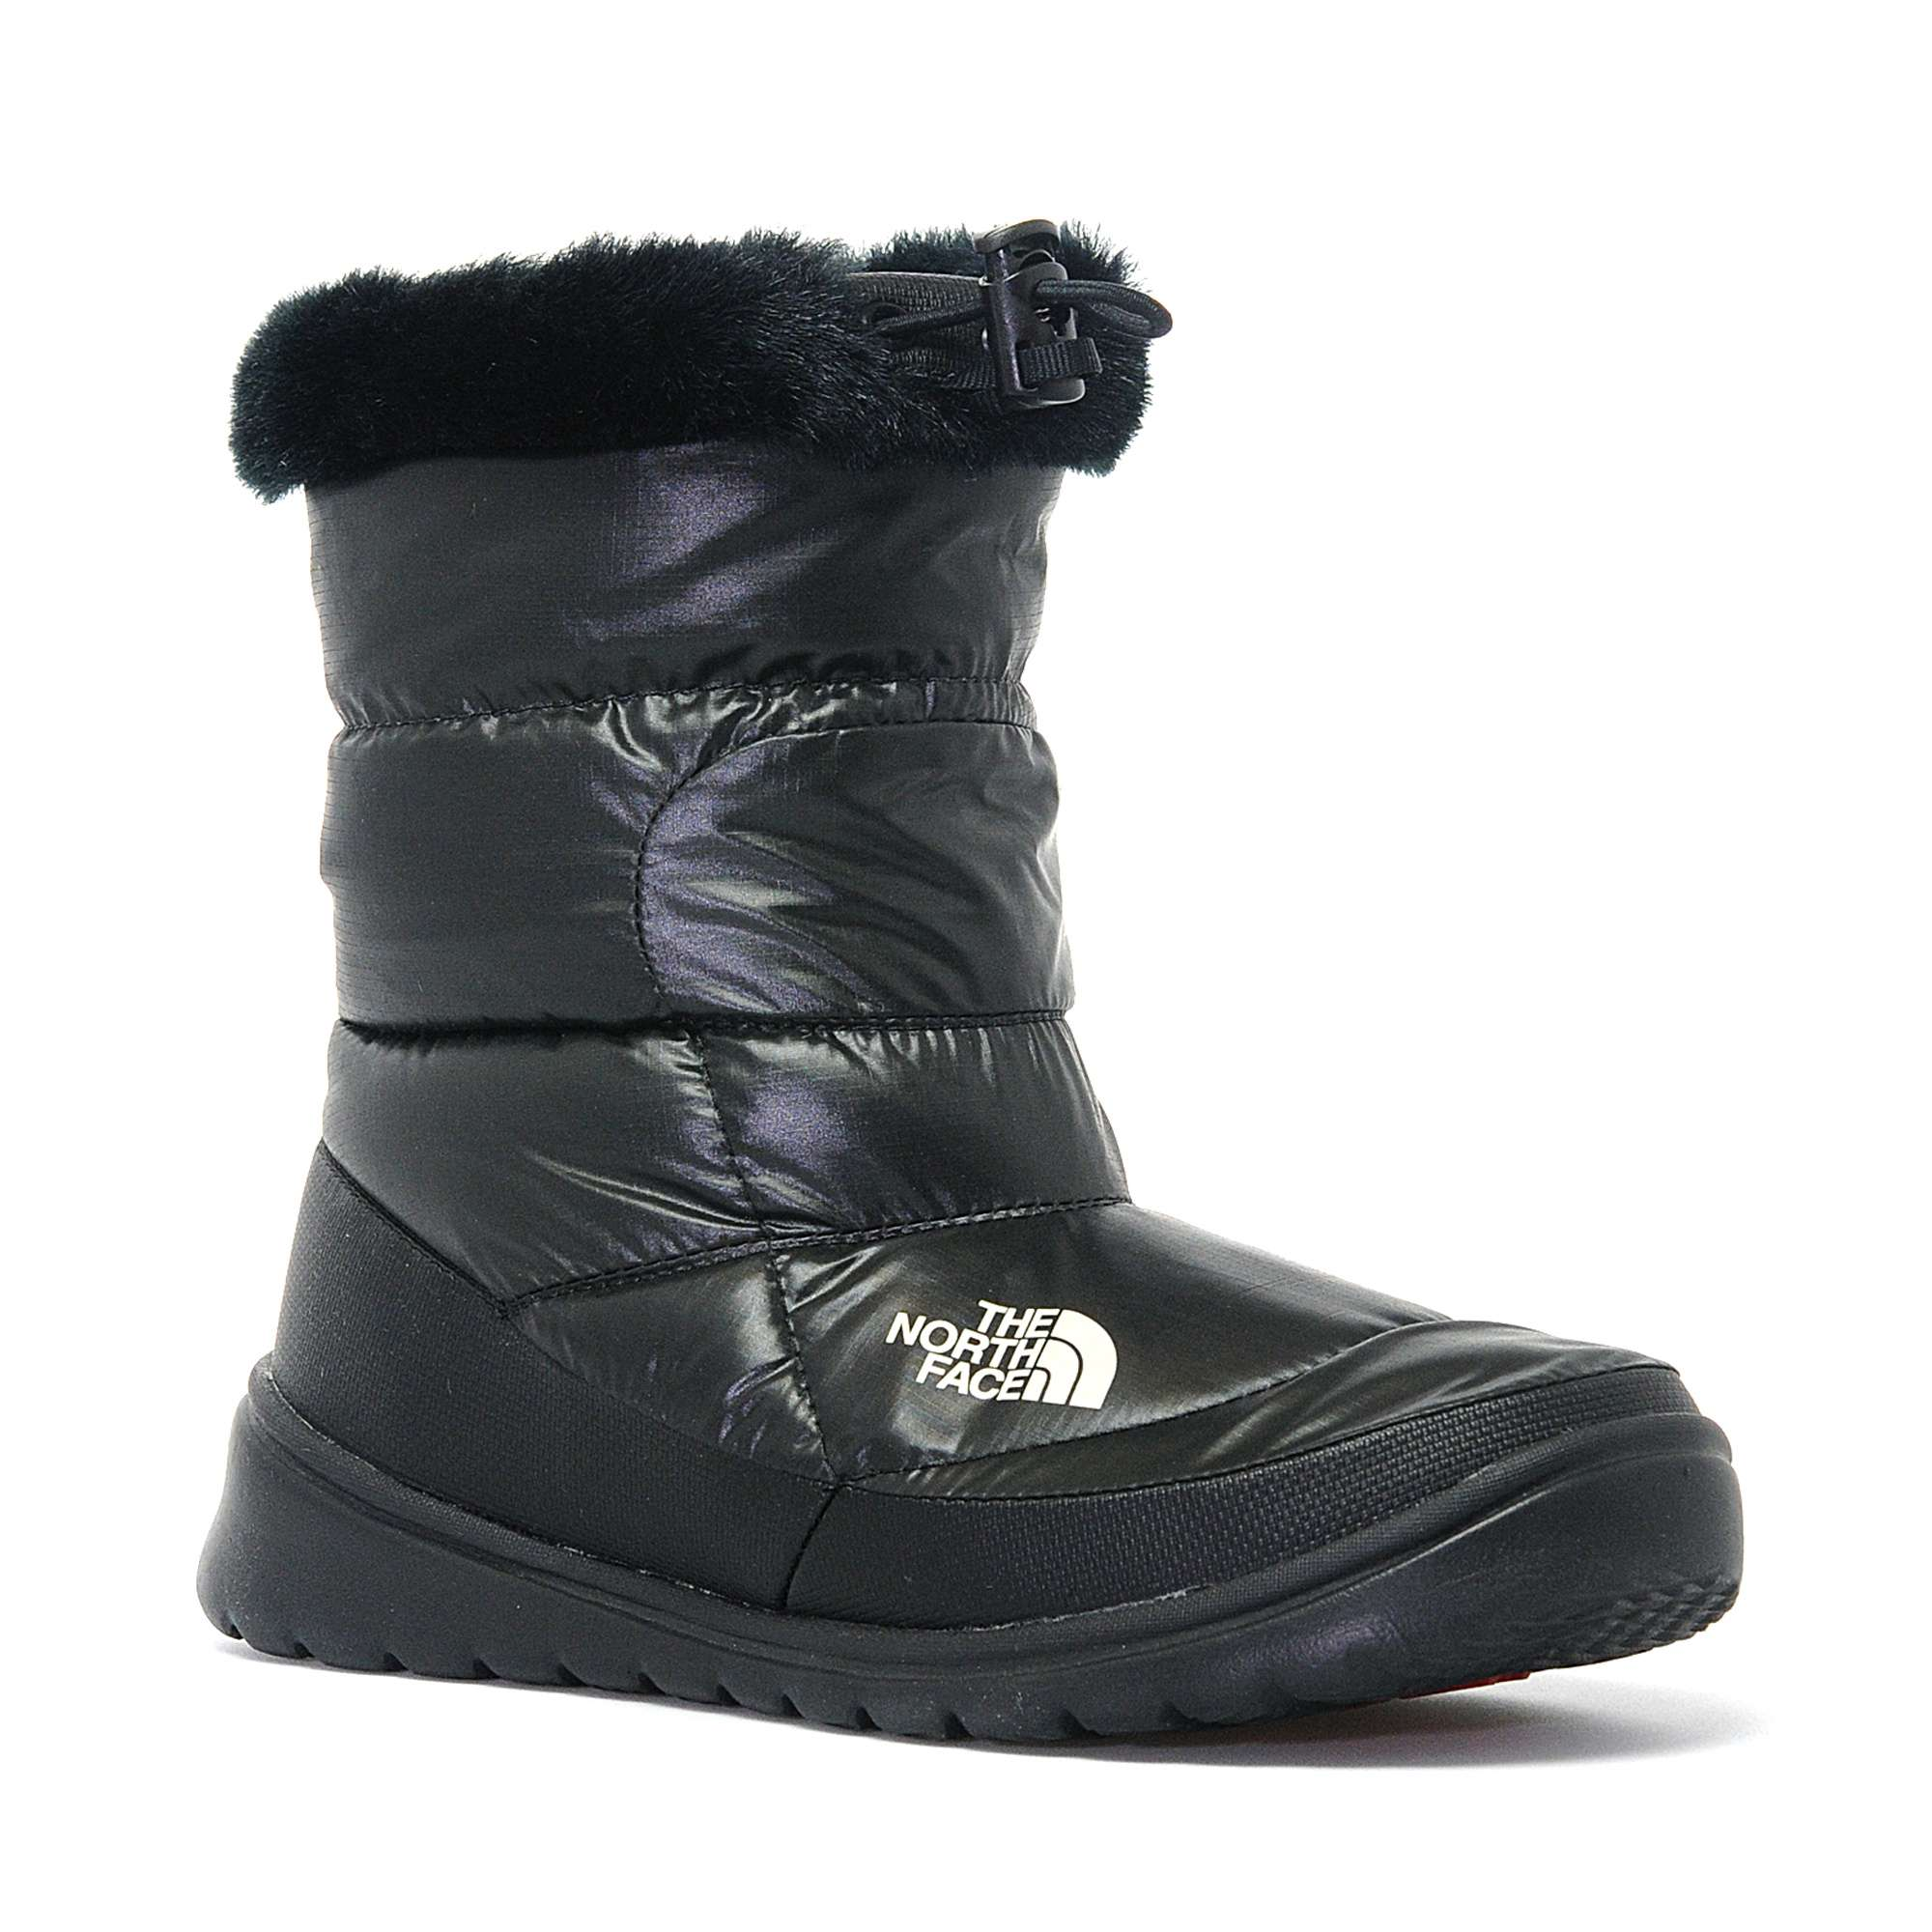 THE NORTH FACE Nuptse Fur IV Snow Boots